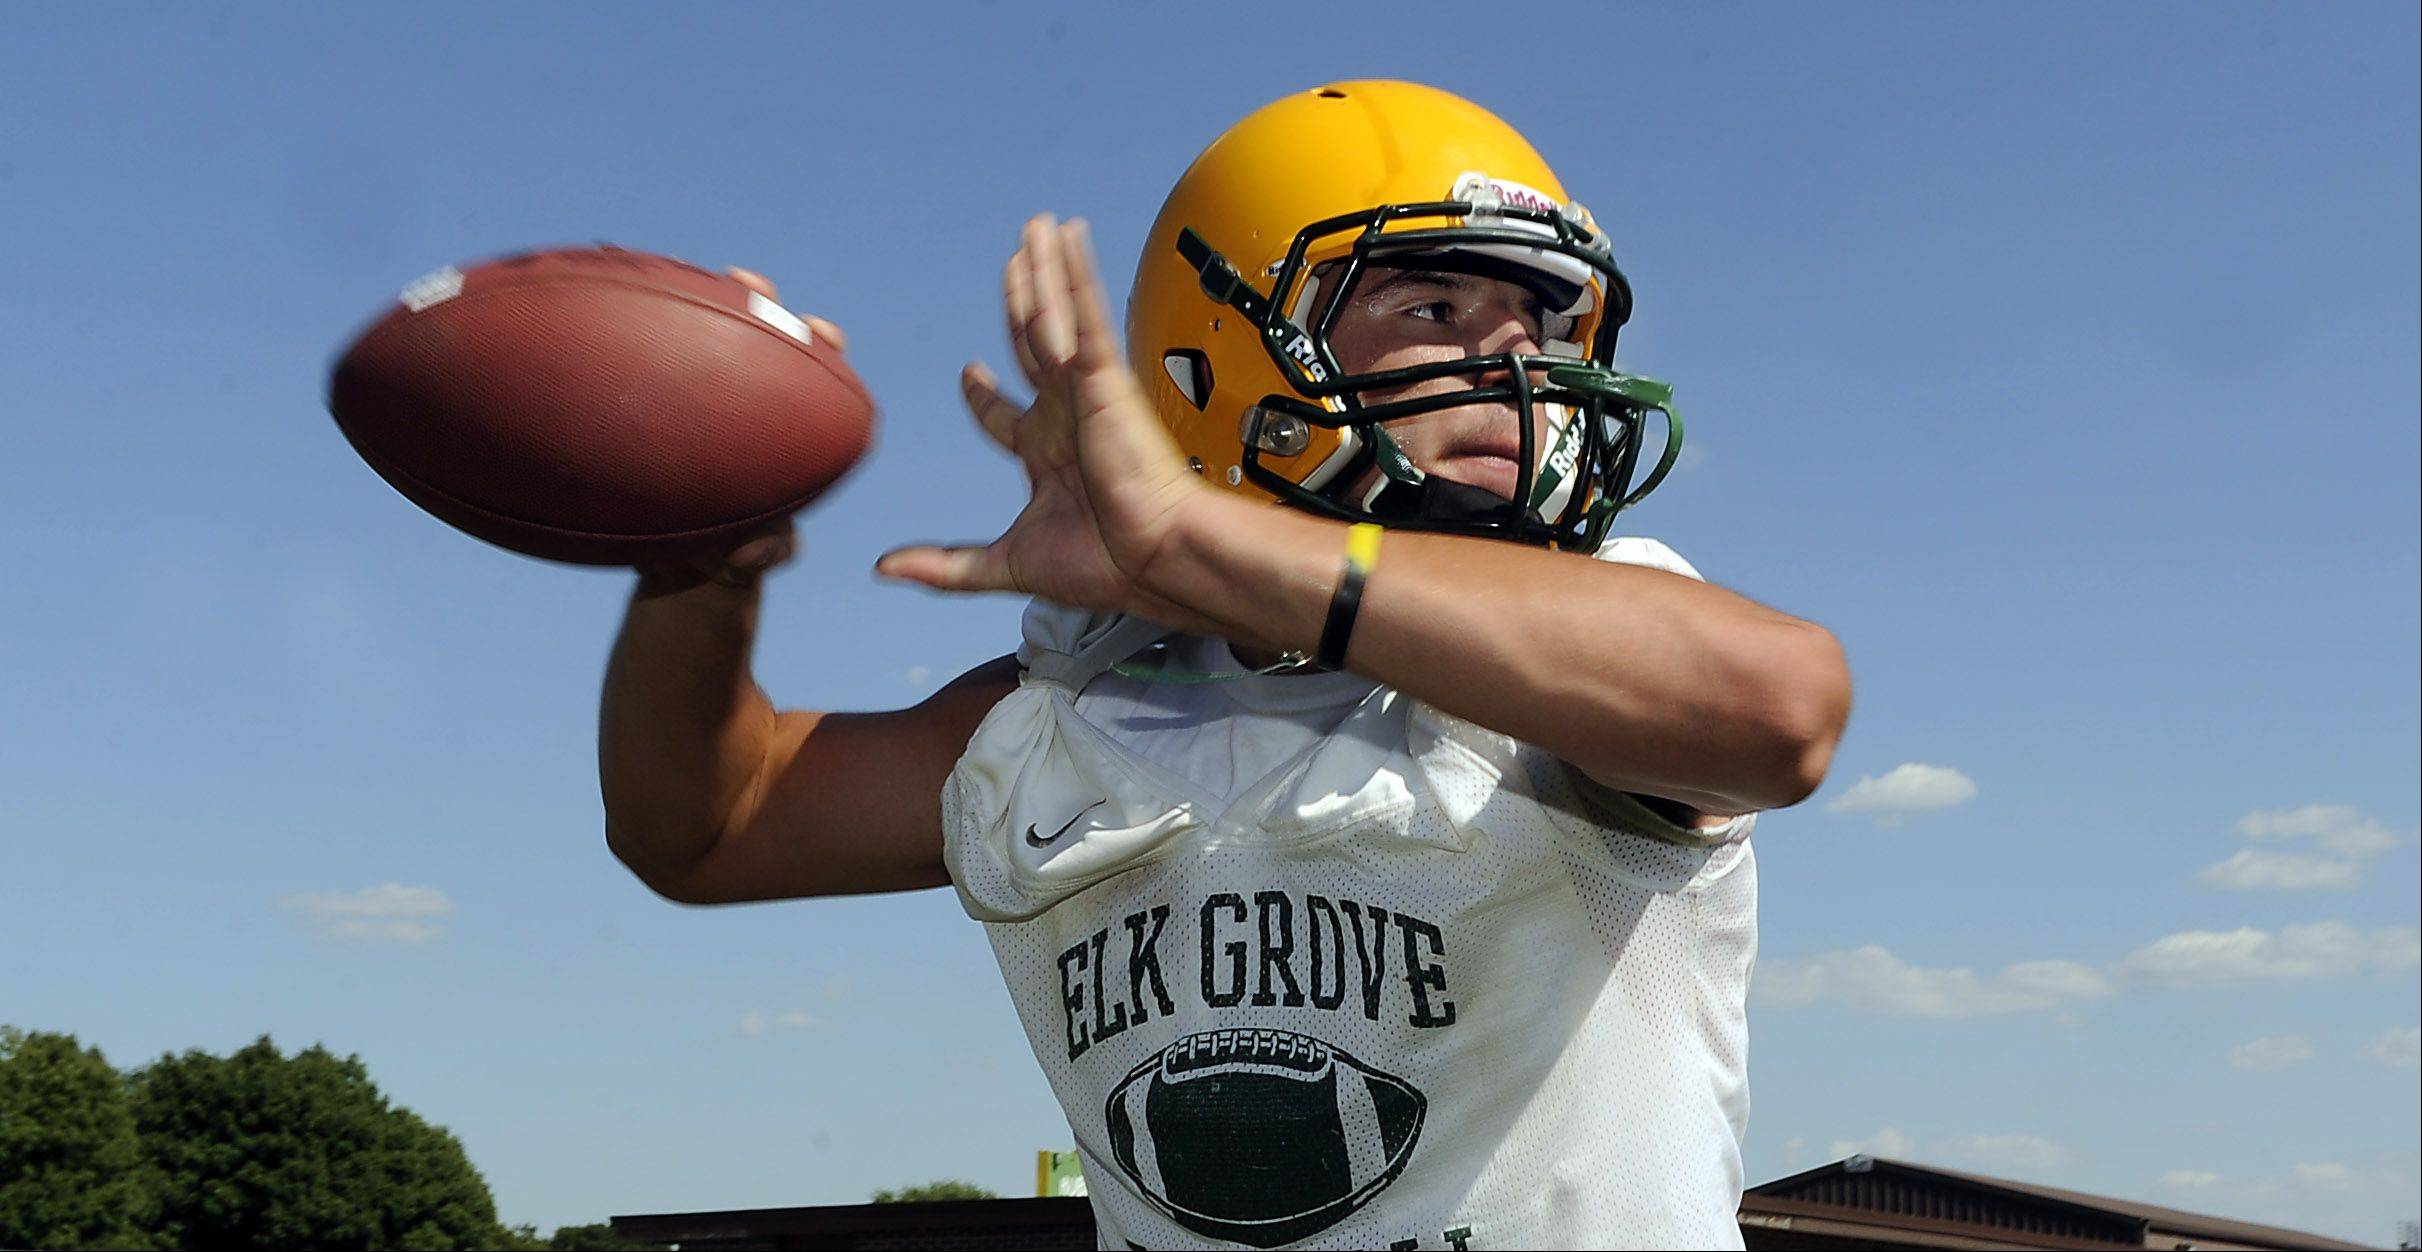 Elk Grove senior Dejan Basara has improved his passing in his first year as a starting varsity quarterback.